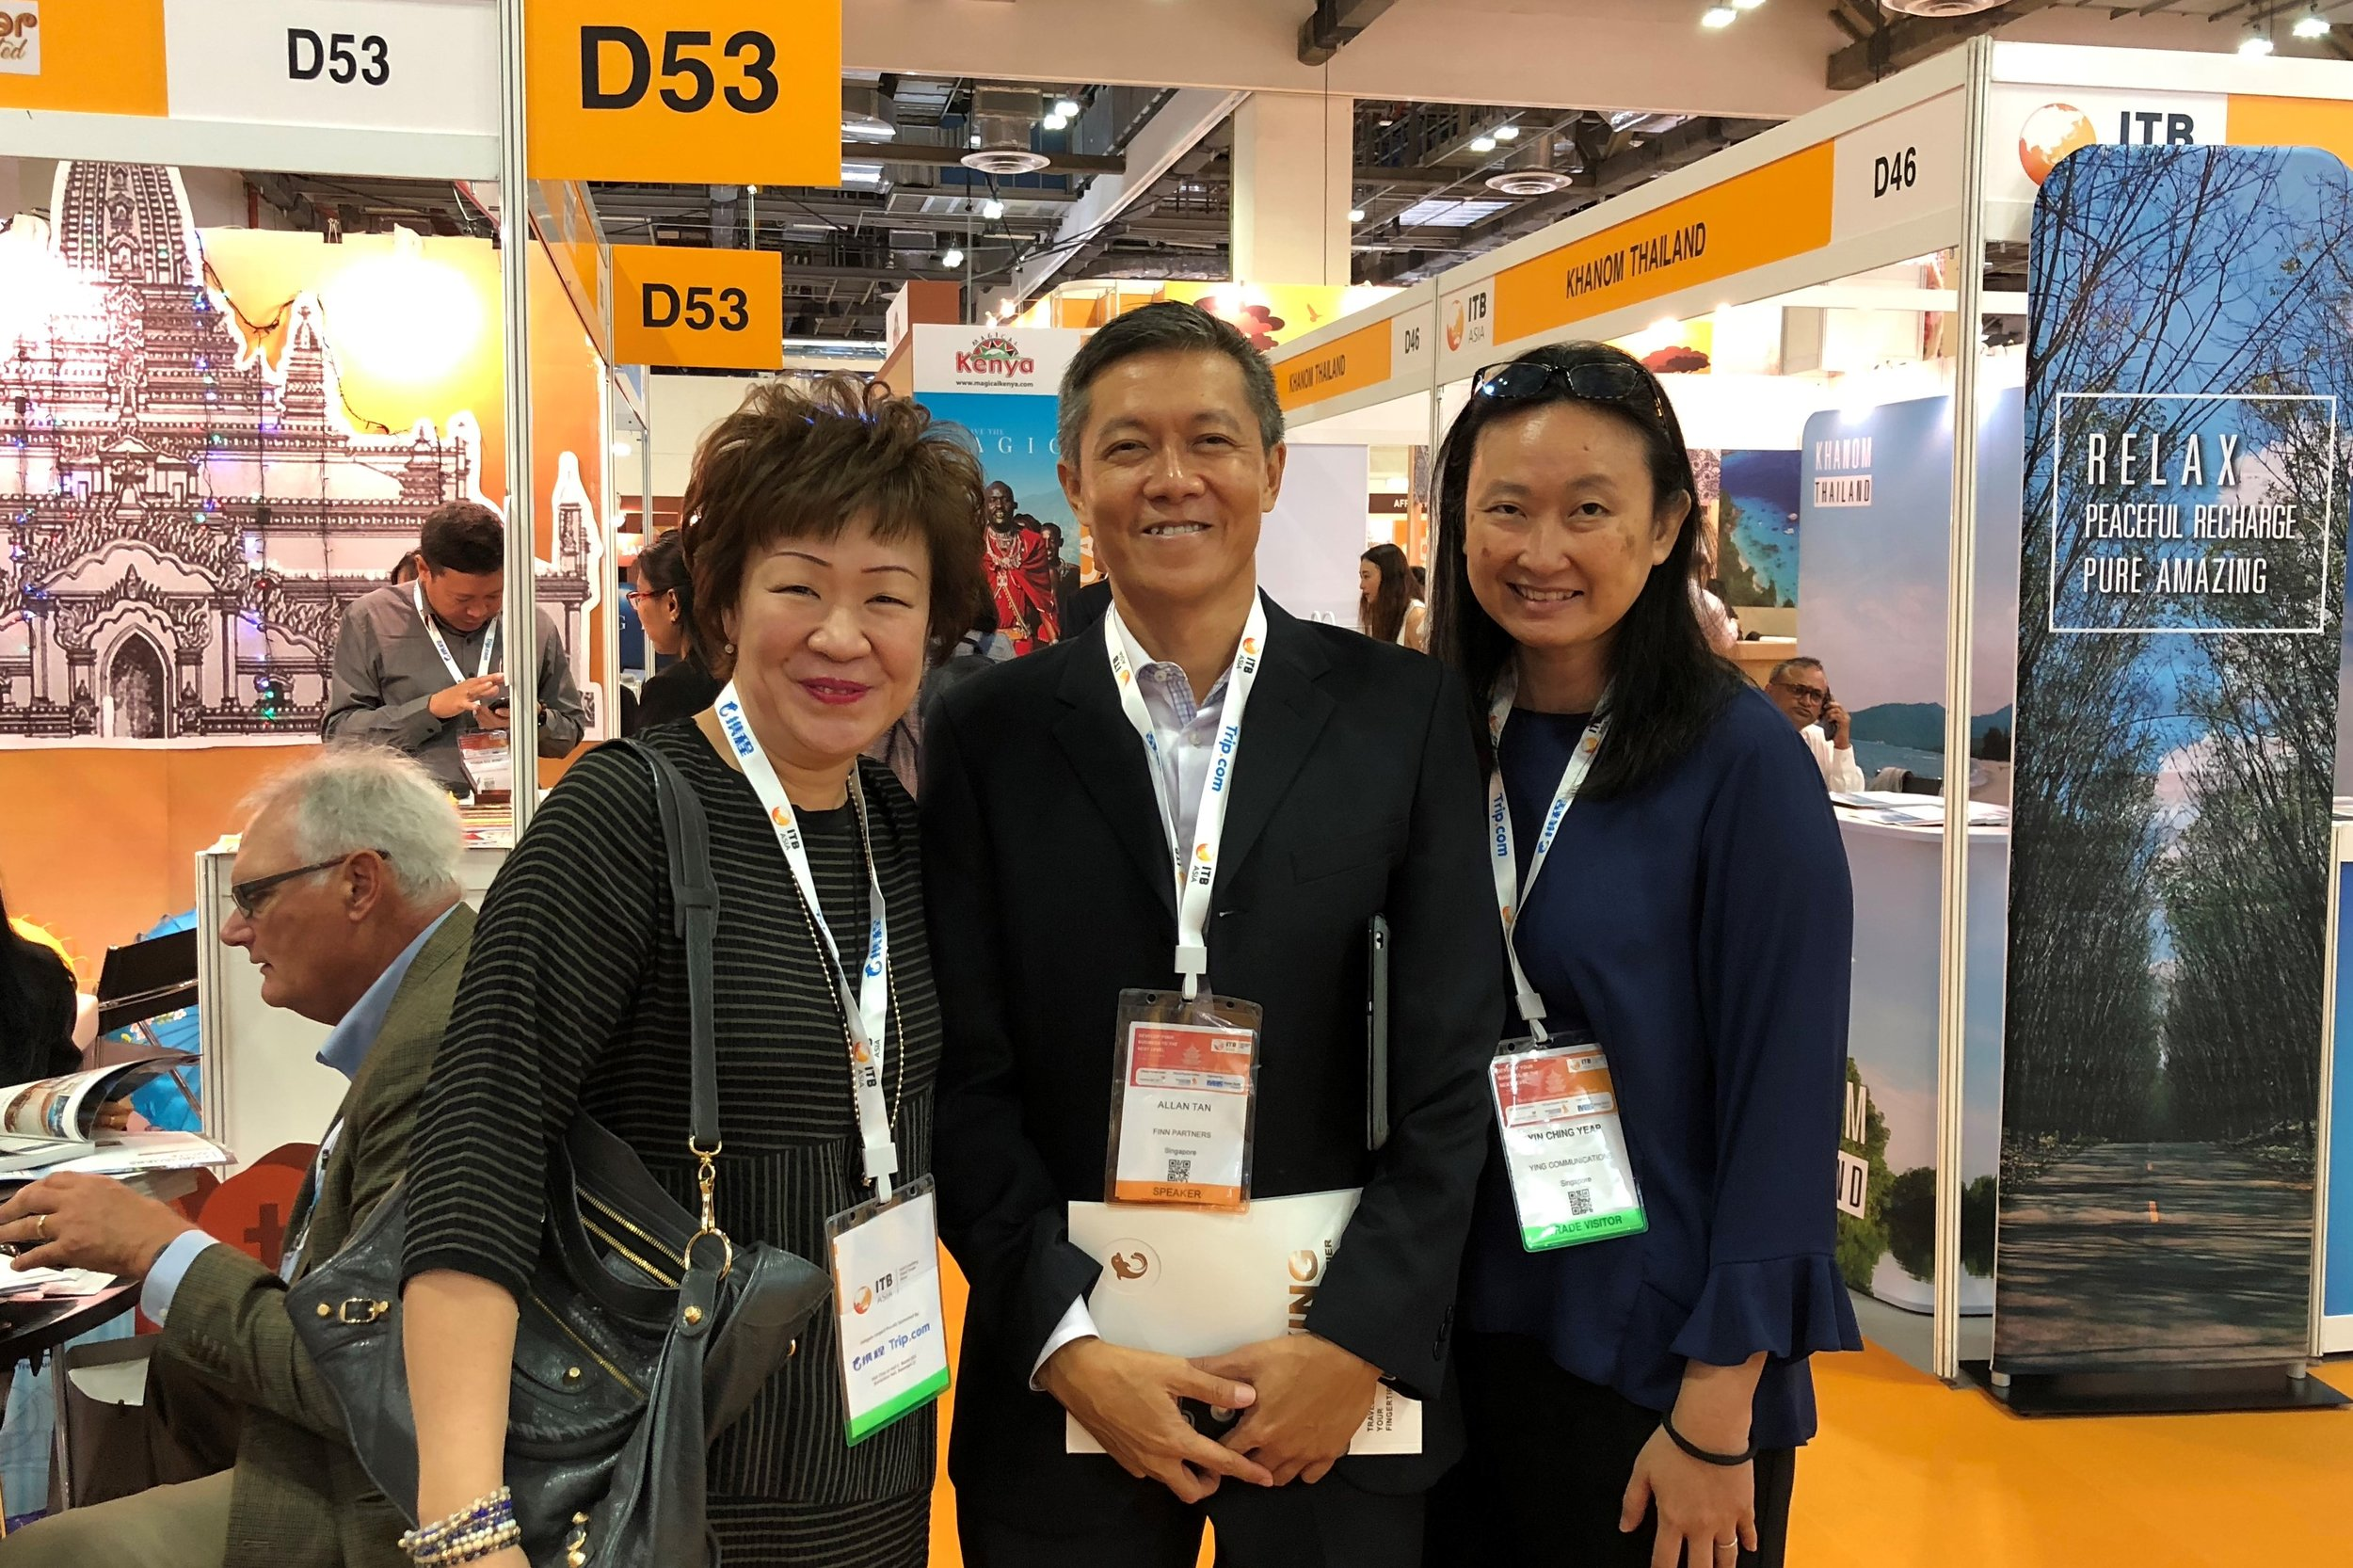 From left to right:  Ms Aileene Thangaveloo (FLA), Mr Allan Tan (Finn Partners), Ms Yin Ching Yeap (Ying Communications).